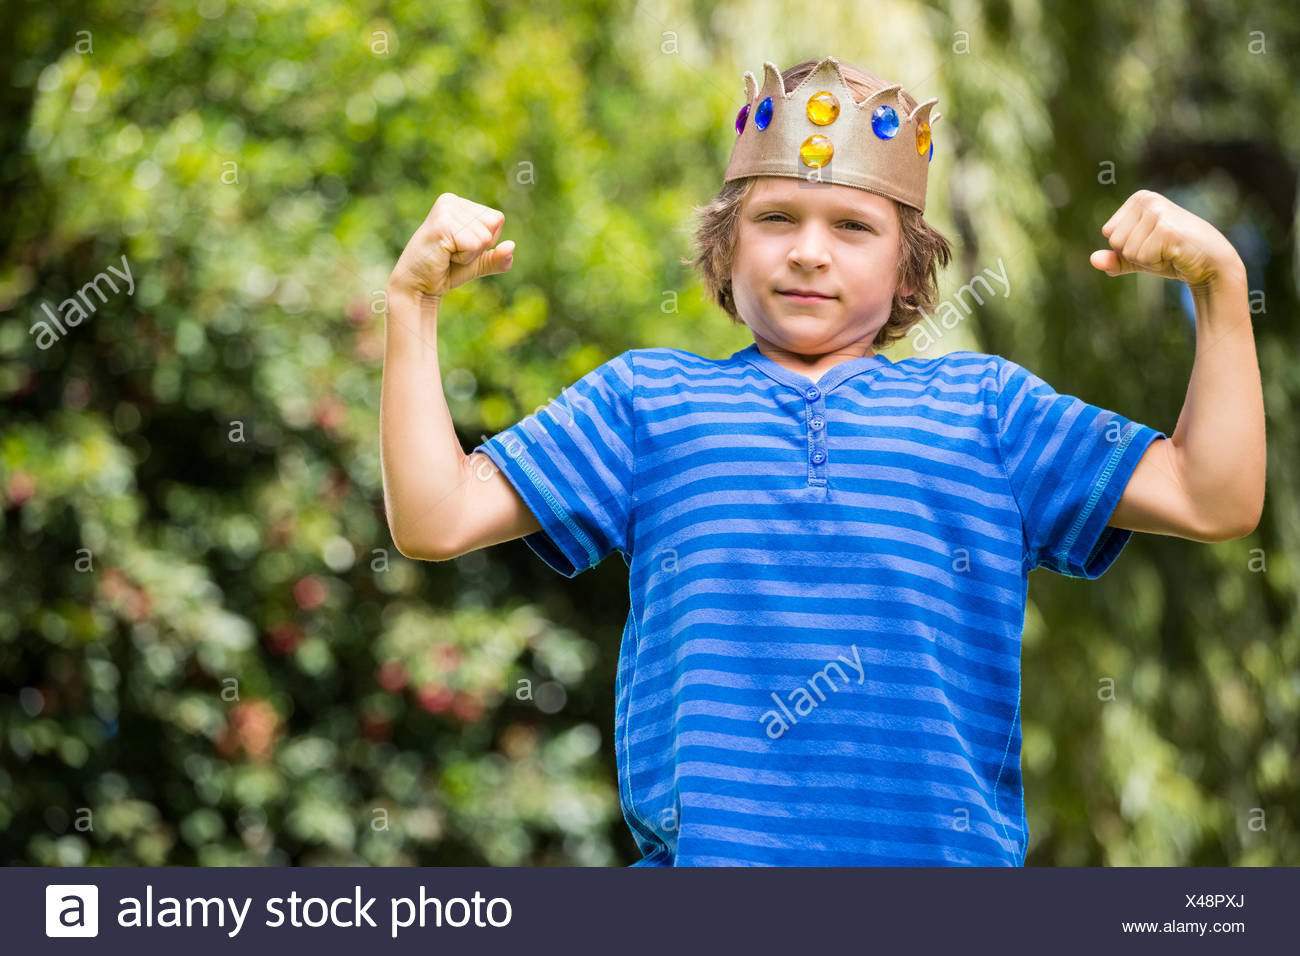 Cute boy with a crown showing his muscles - Stock Image